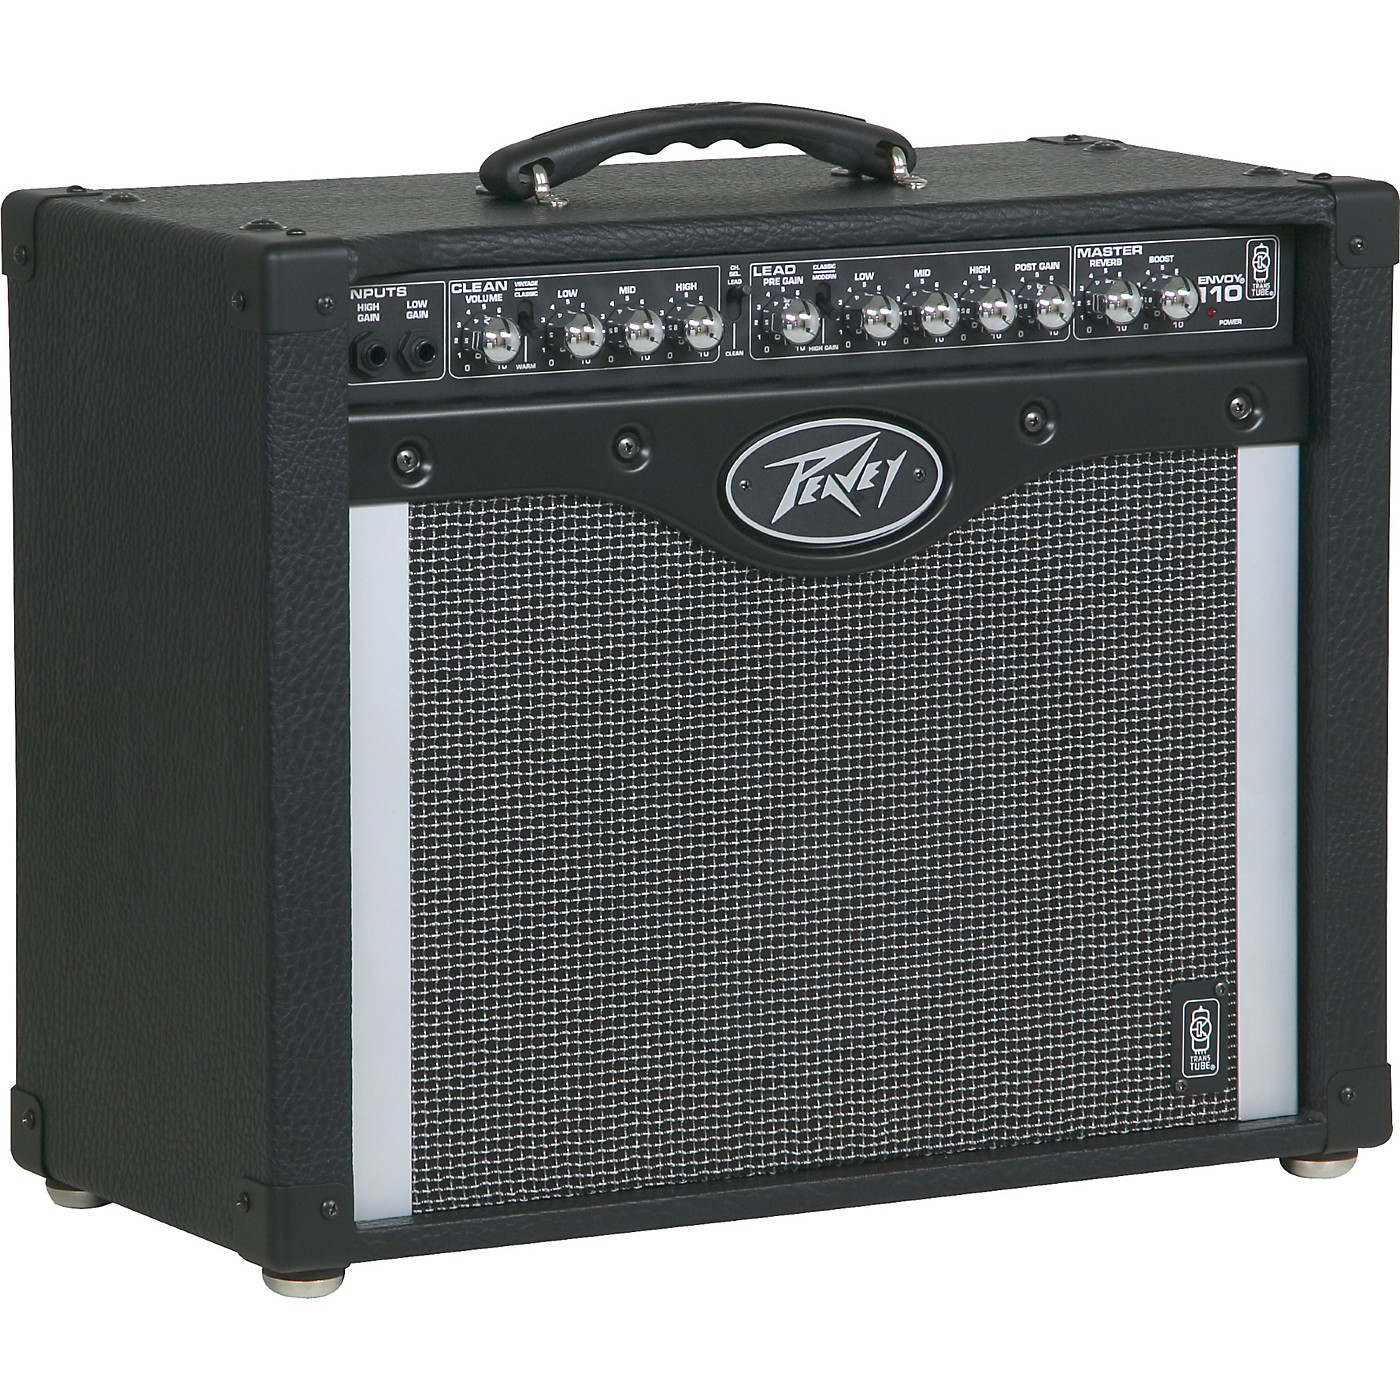 Peavey Envoy 110 Guitar Amplifier with TransTube Technology thumbnail